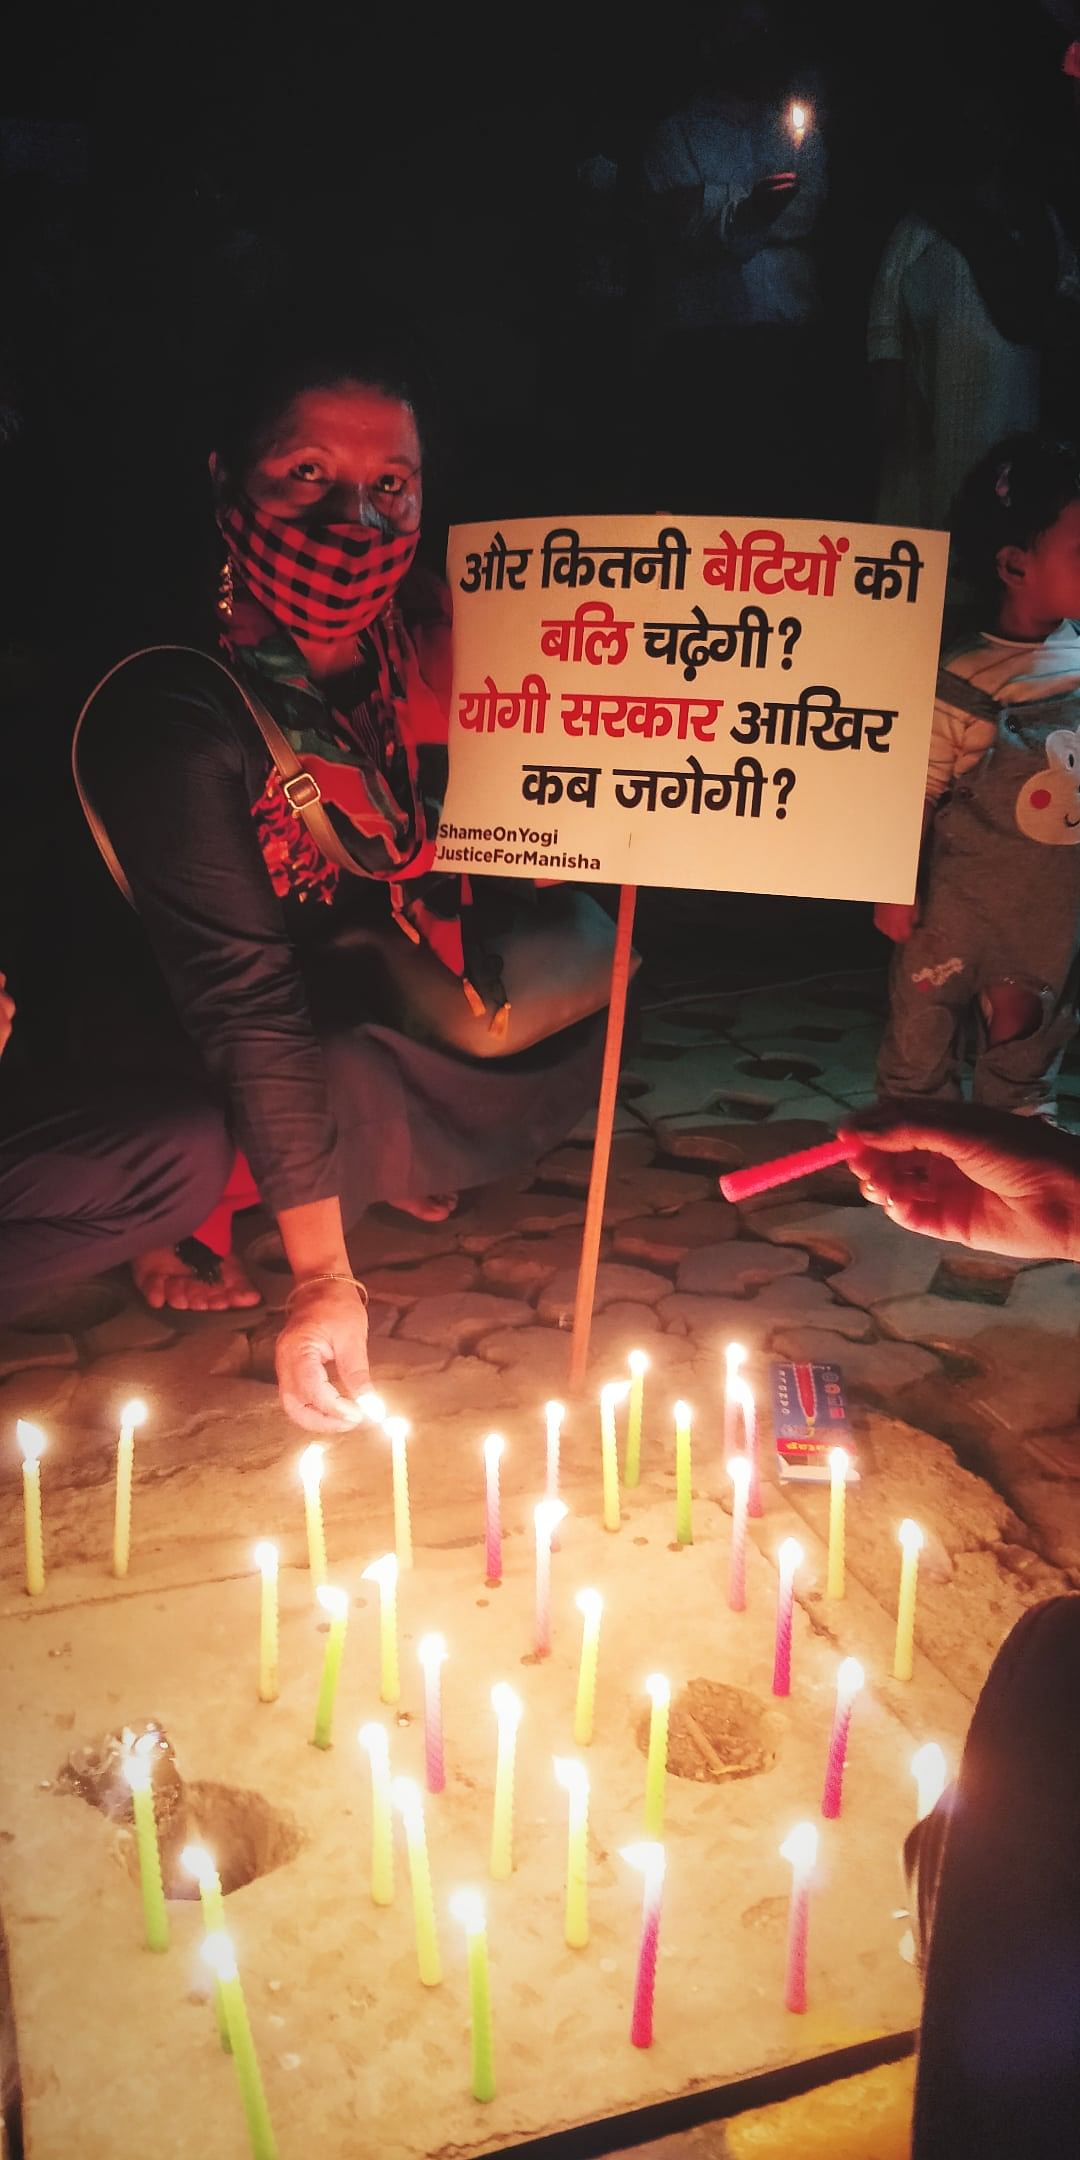 Many, including citizens and opposition leaders, came forward to stand against the brutal gang rape and murder and the subsequent administrative lapses in the case, at Jantar Mantar, in Delhi, on Friday 2 October.